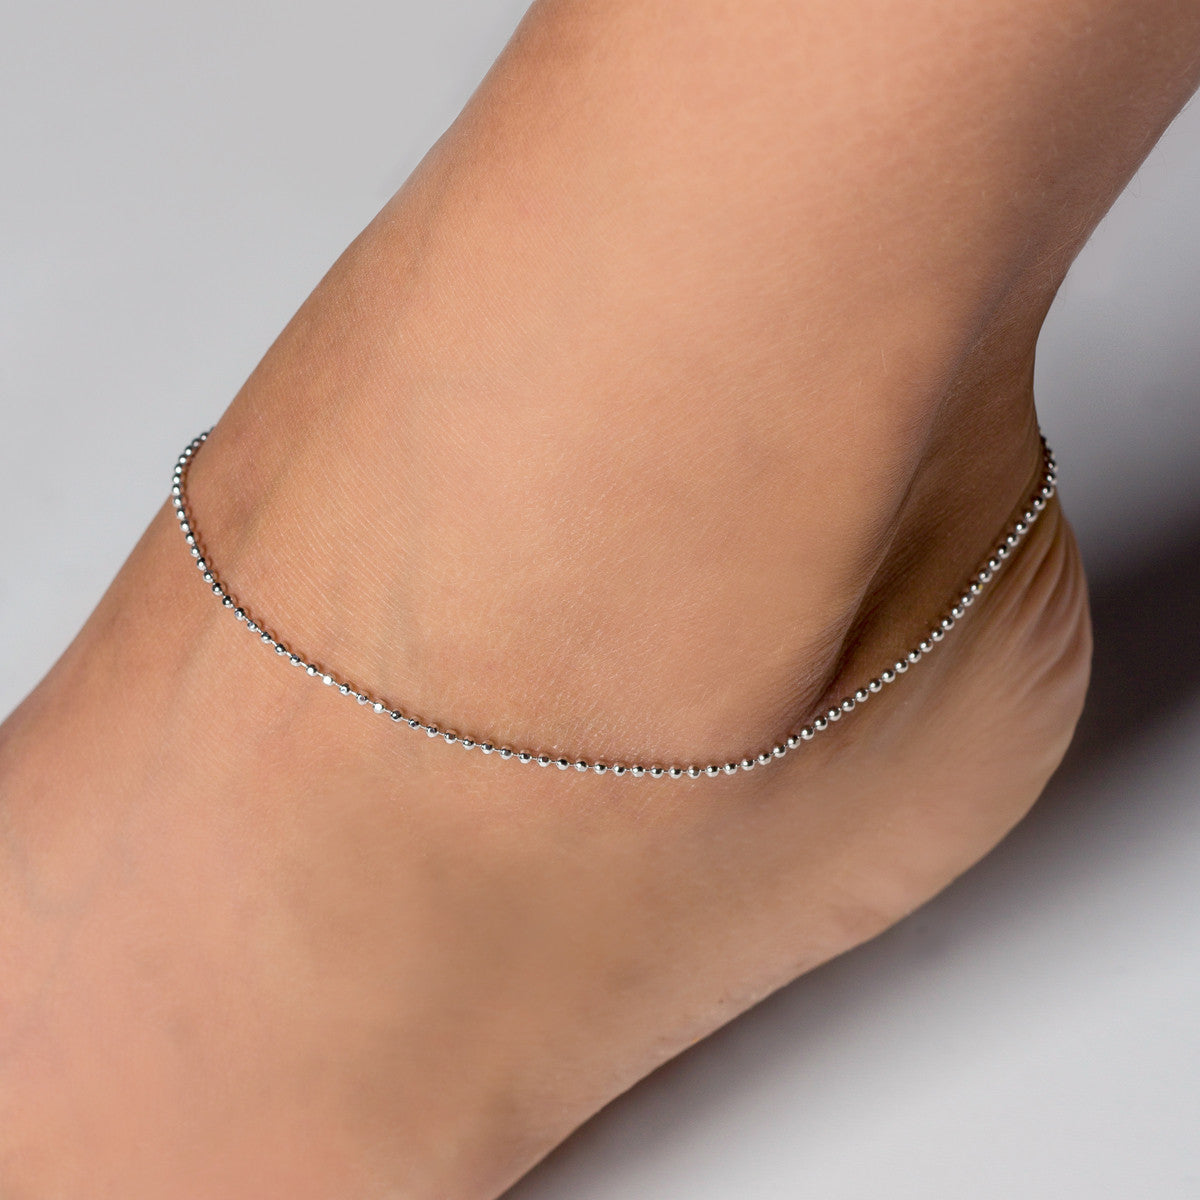 summer coin jewelry color best bohemian bracelets anklet under bracelet ankle product women leg anklets antique com dhgate barefoot tassel flower for silver cool